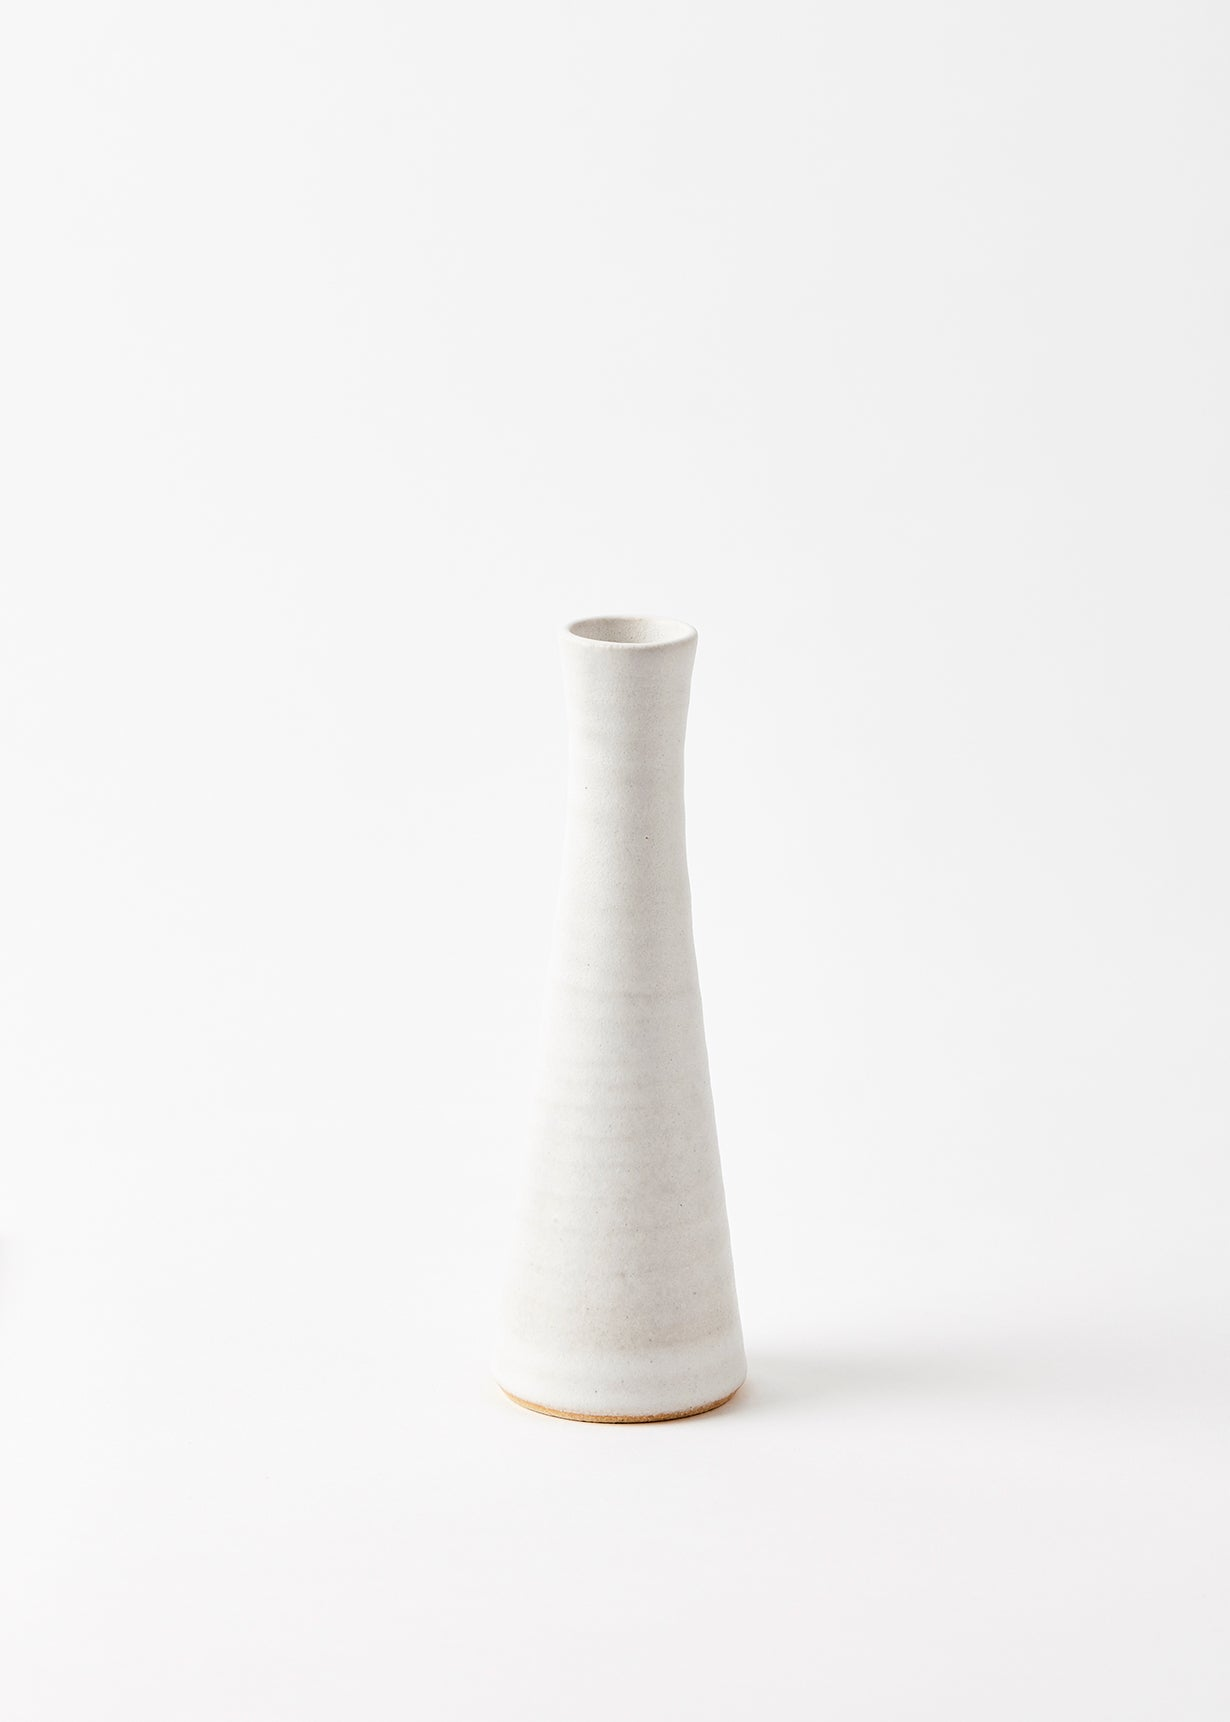 short snow stem vase /candlestick